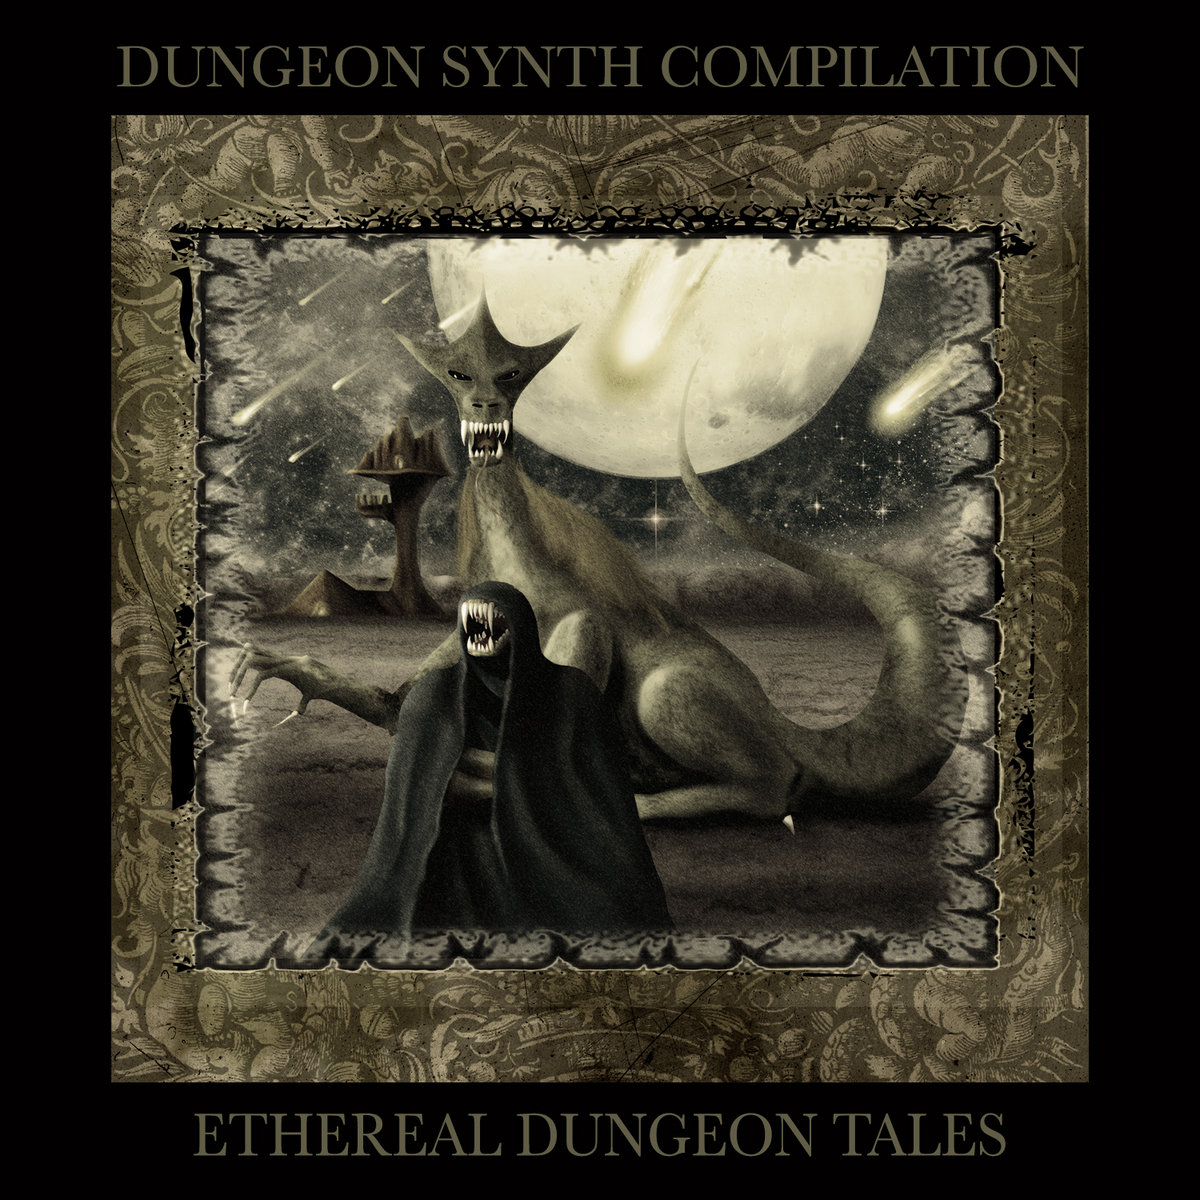 Ethereal Dungeon Tales | Dungeon Synth Compilation